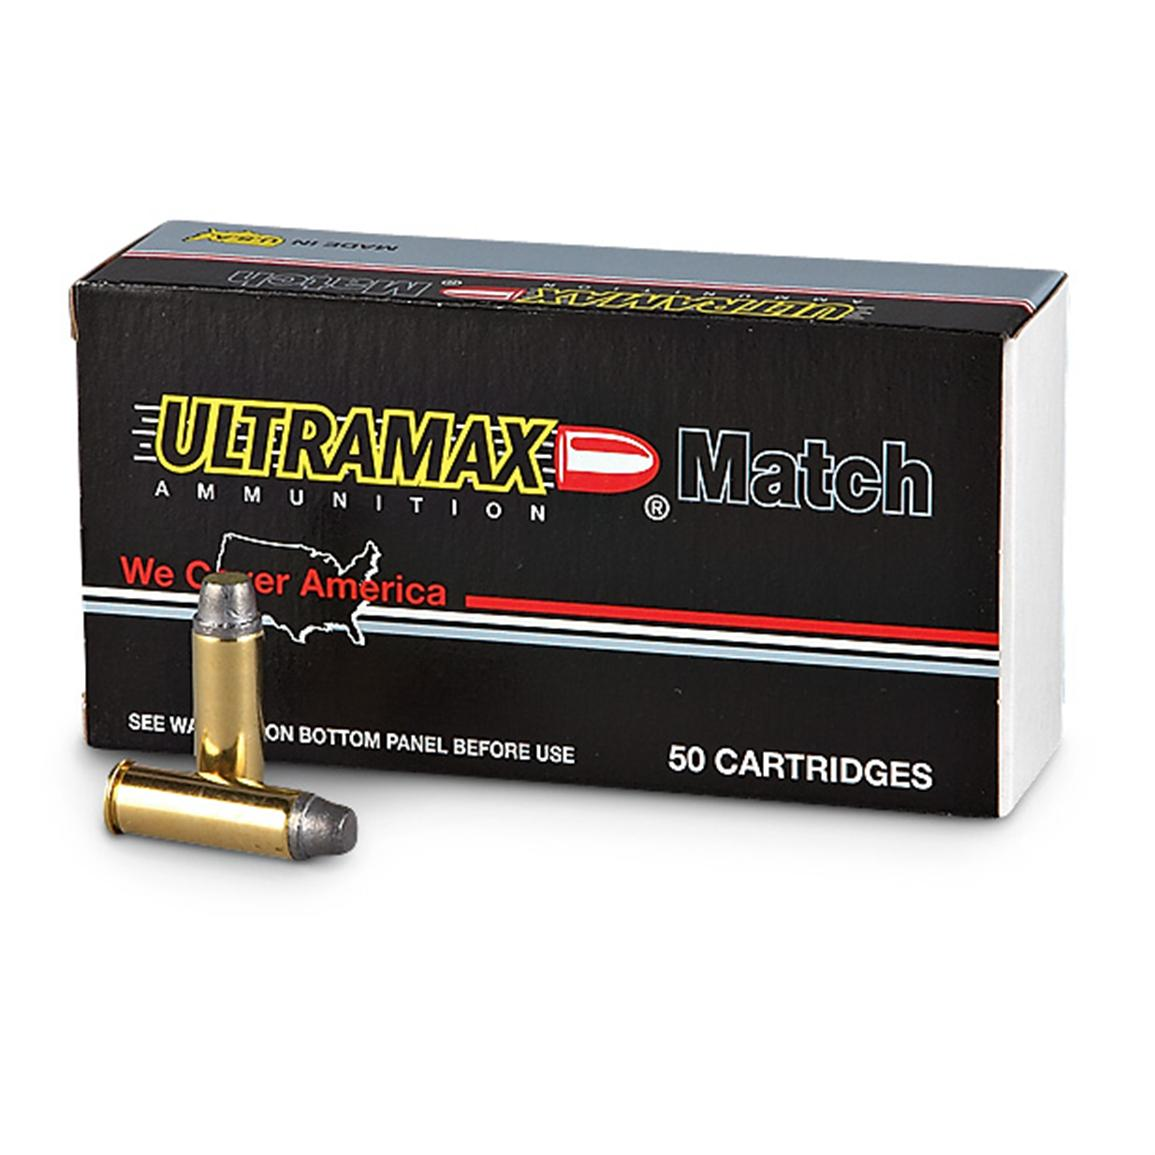 Ultramax, Remanufactured, .44 Mag, SWC, 240 Grain, 1,000 Rounds